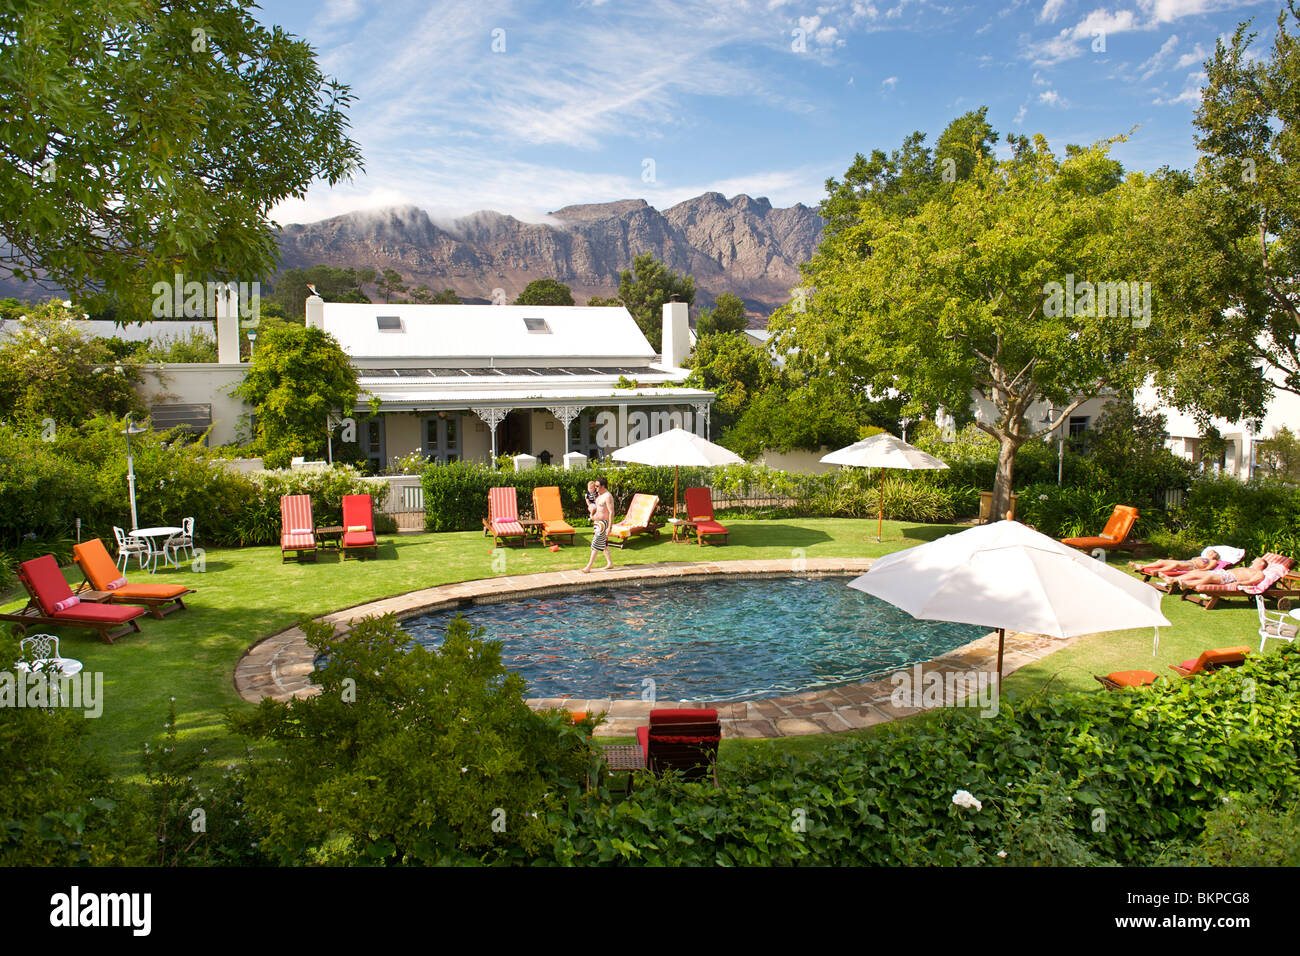 View of the pool at Le Quartier Francais, Franschhoek, Western Cape Province, South Africa. - Stock Image